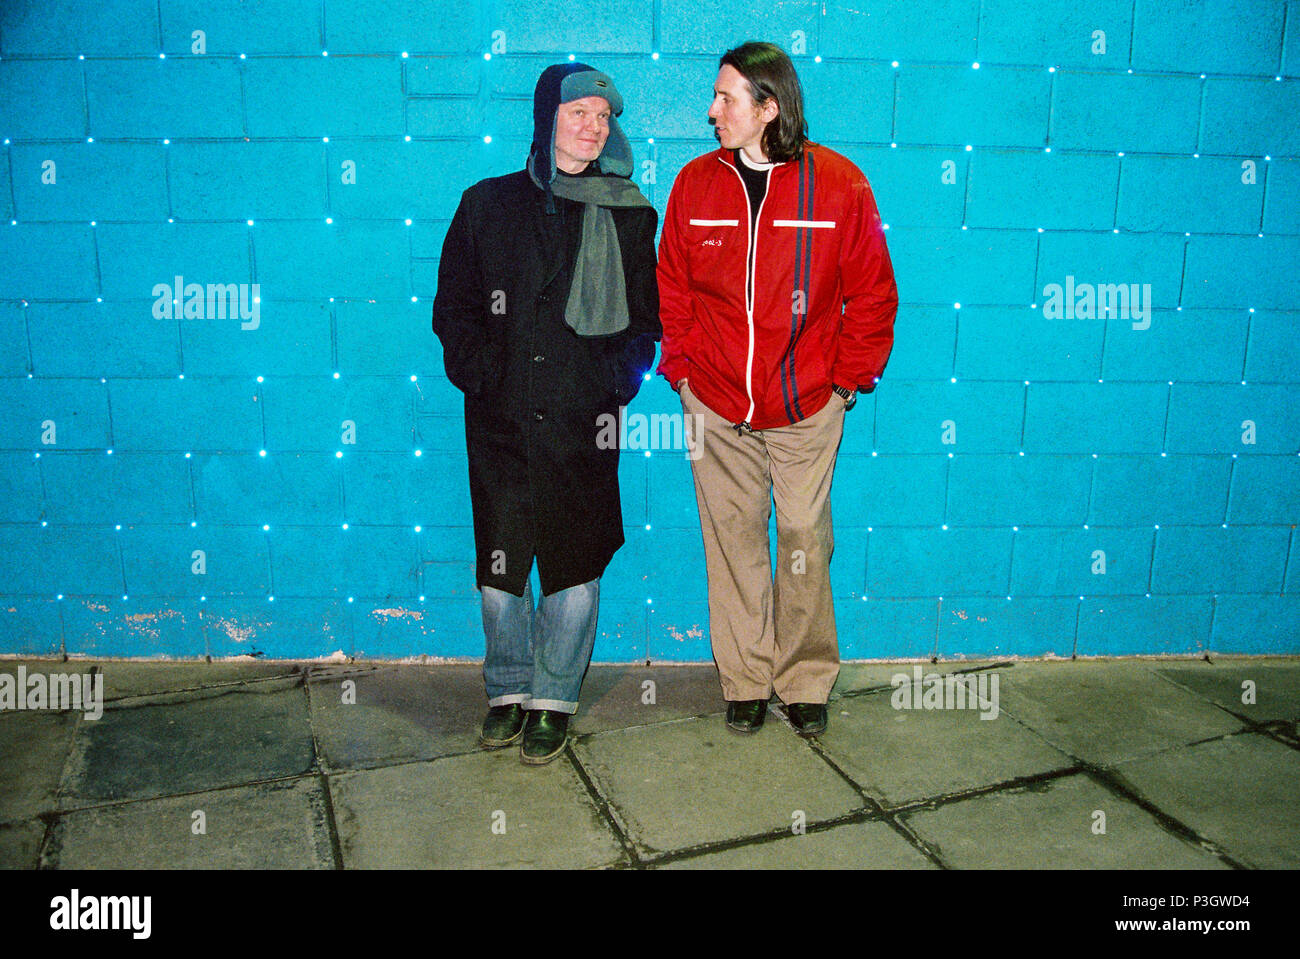 Guy Chadwick and Terry Bickers from House of Love, Photographed on the South Bank March 2005, London, England, United Kingdom. - Stock Image